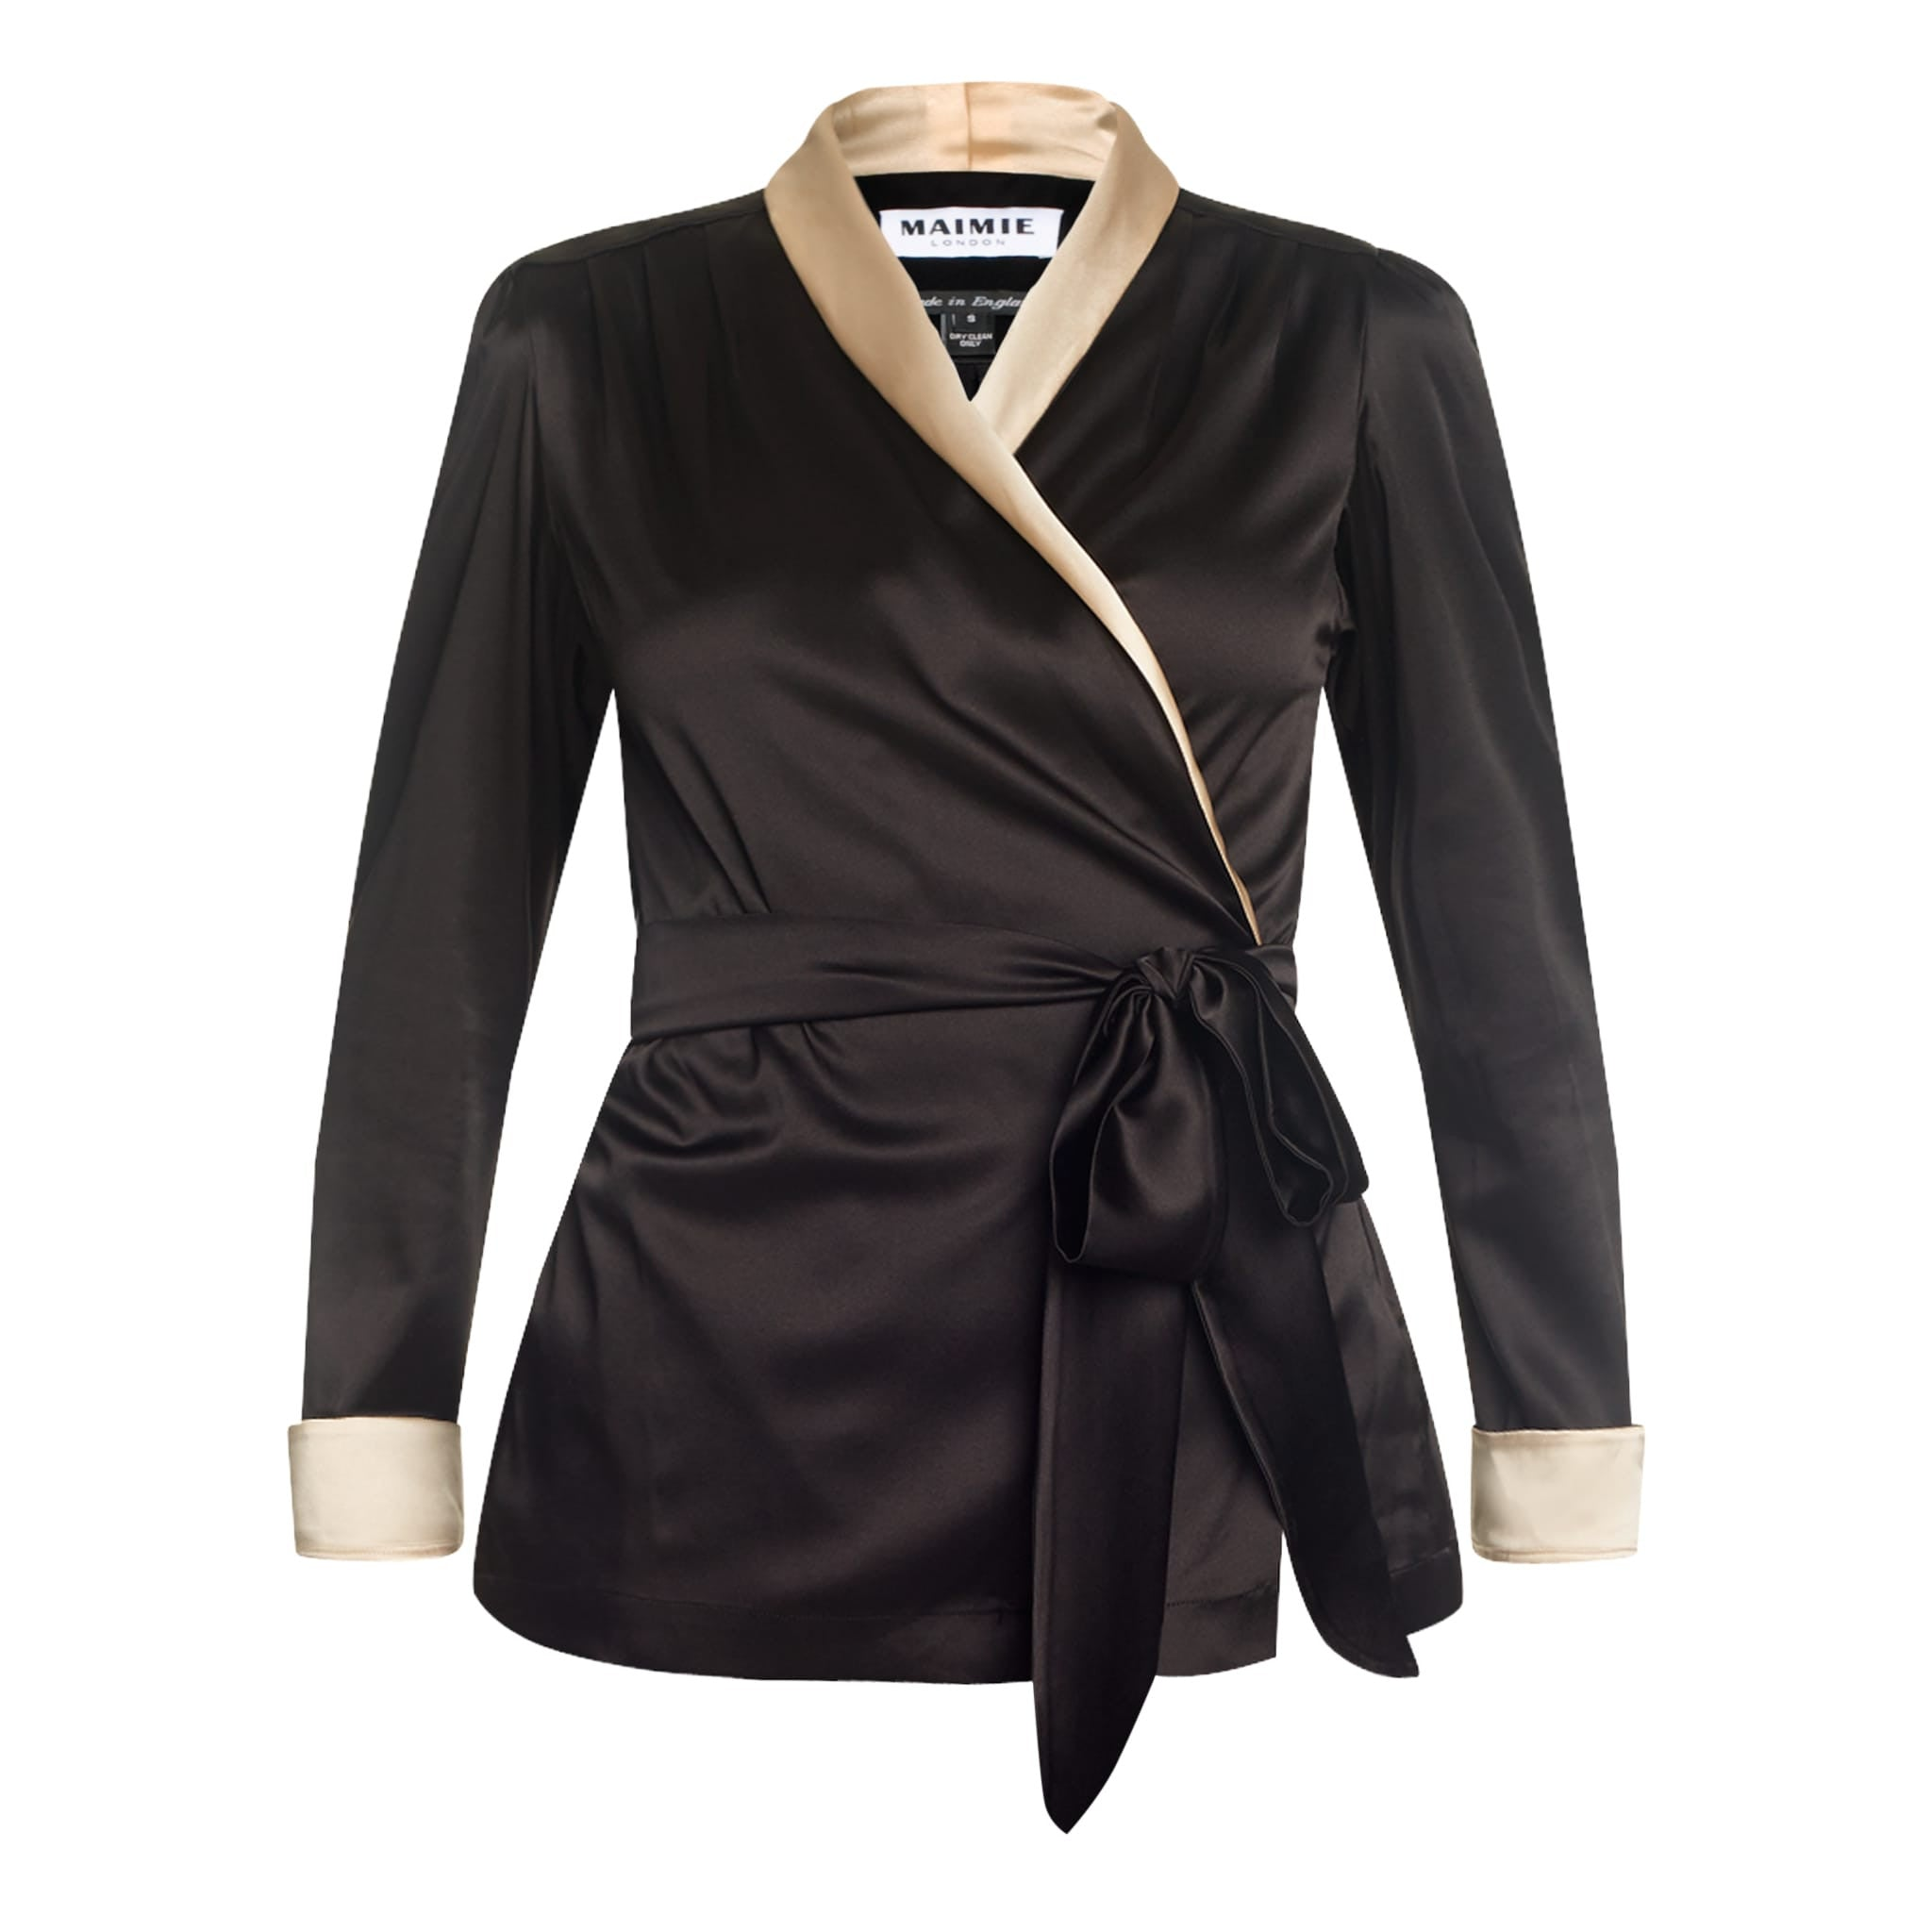 flattering silk wrap shirt, black shirt with oysetr trim, eveningwear